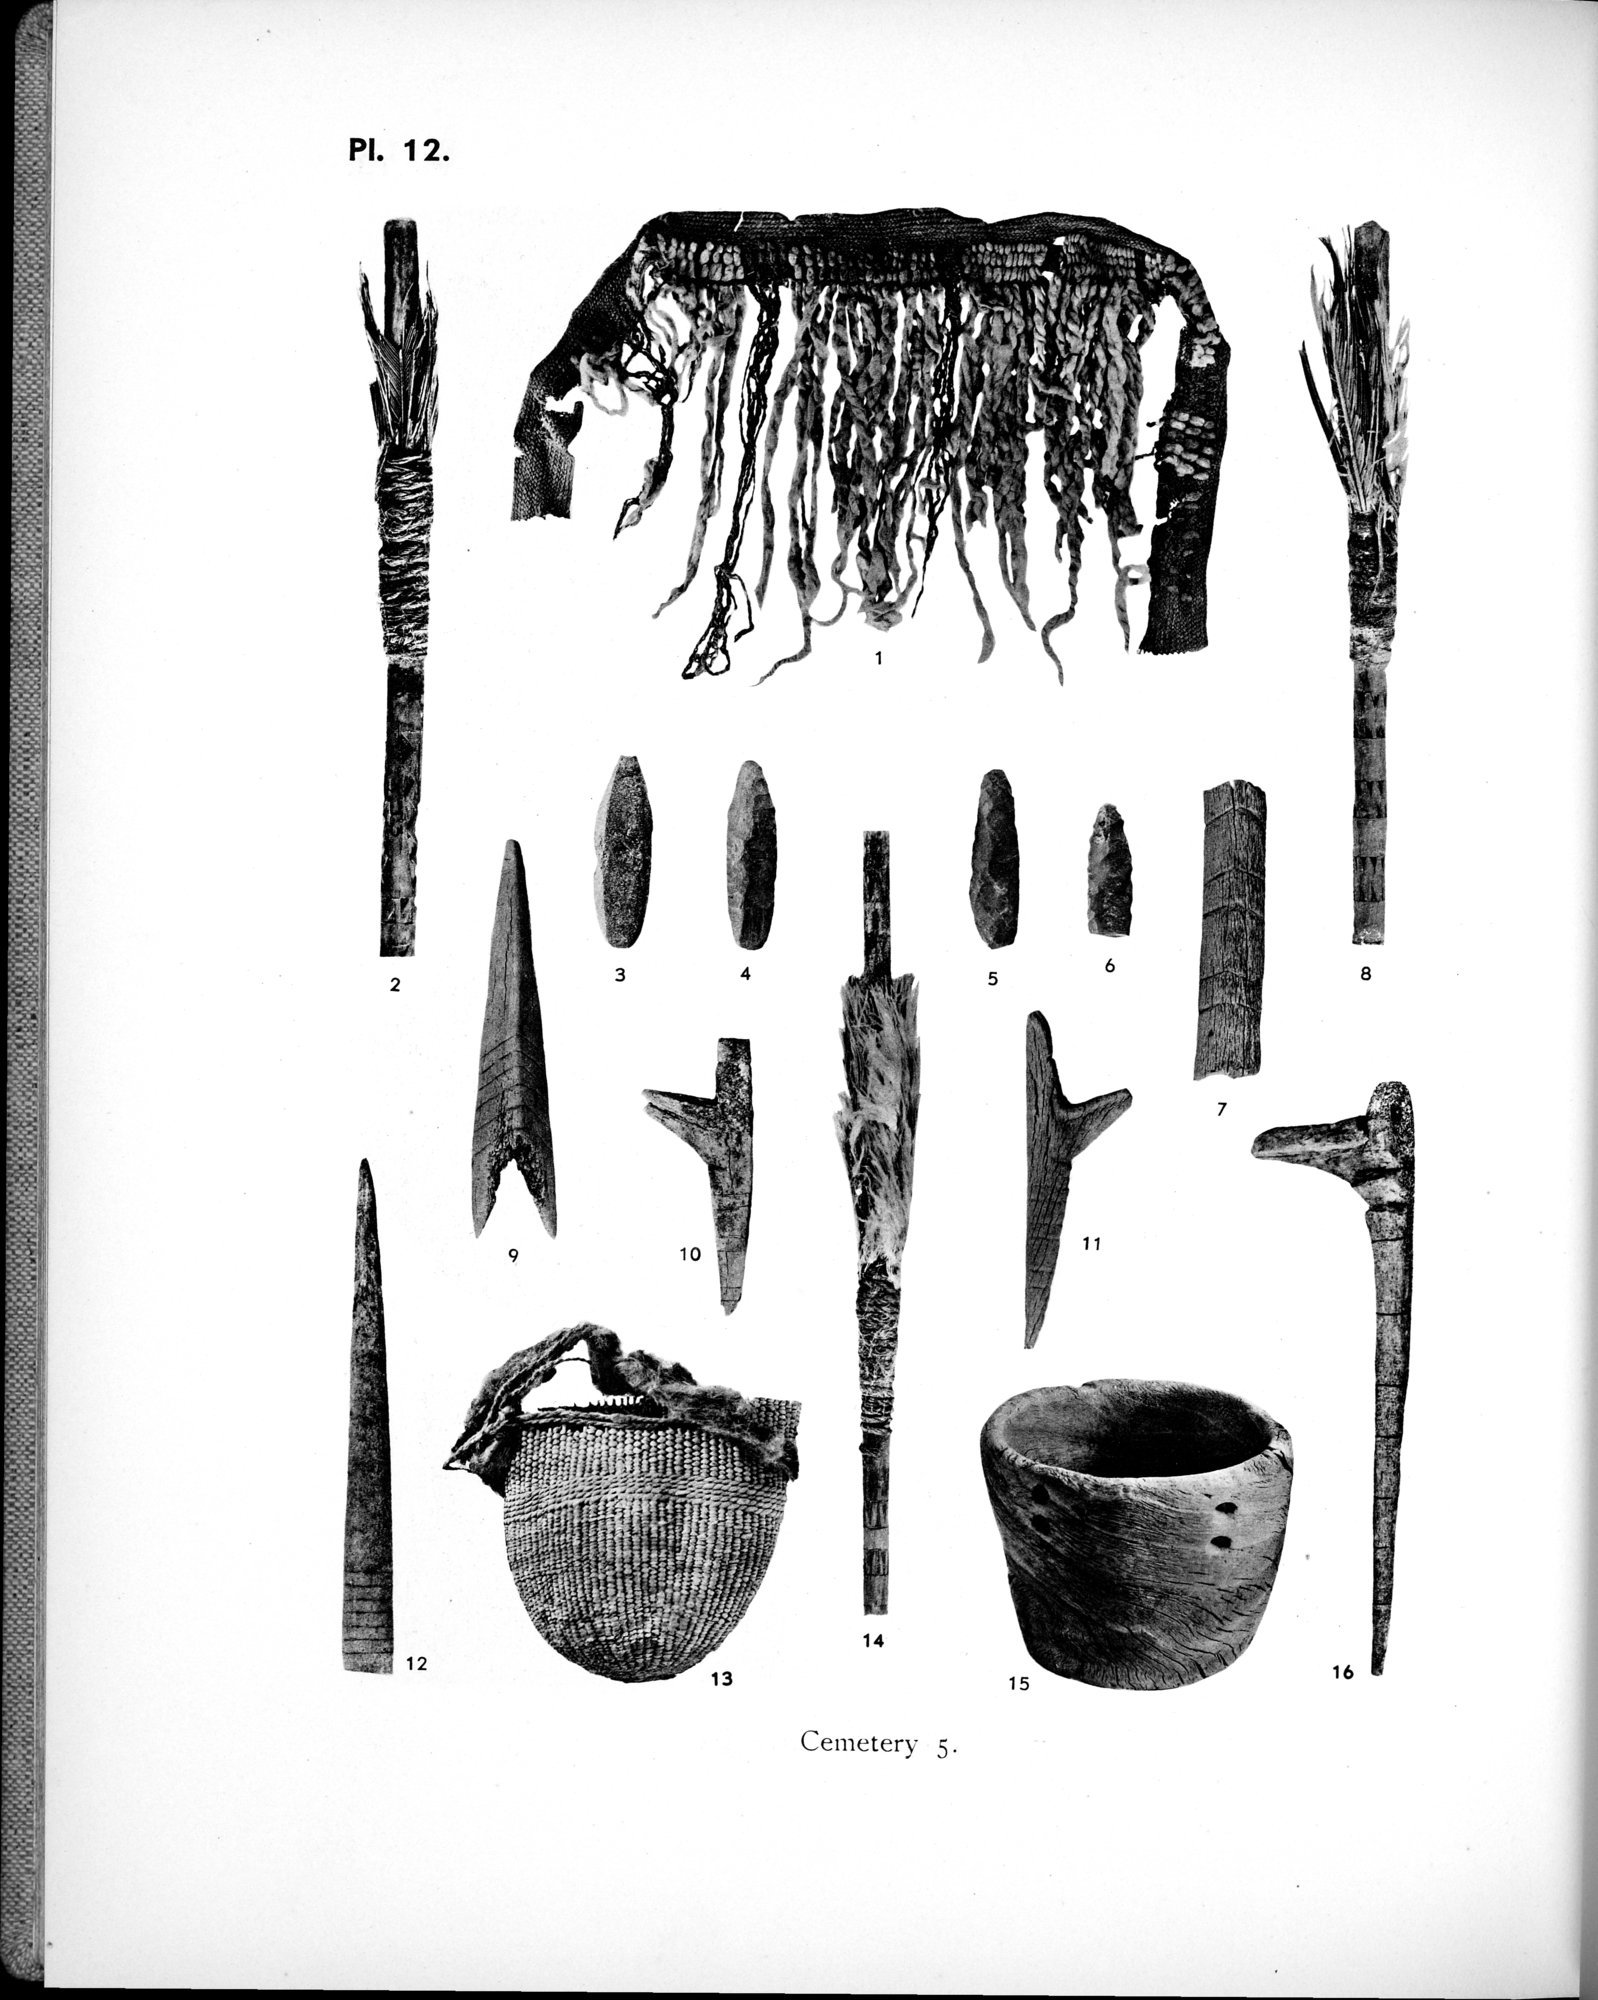 Archaeological Researches in Sinkiang : vol.1 / Page 300 (Grayscale High Resolution Image)